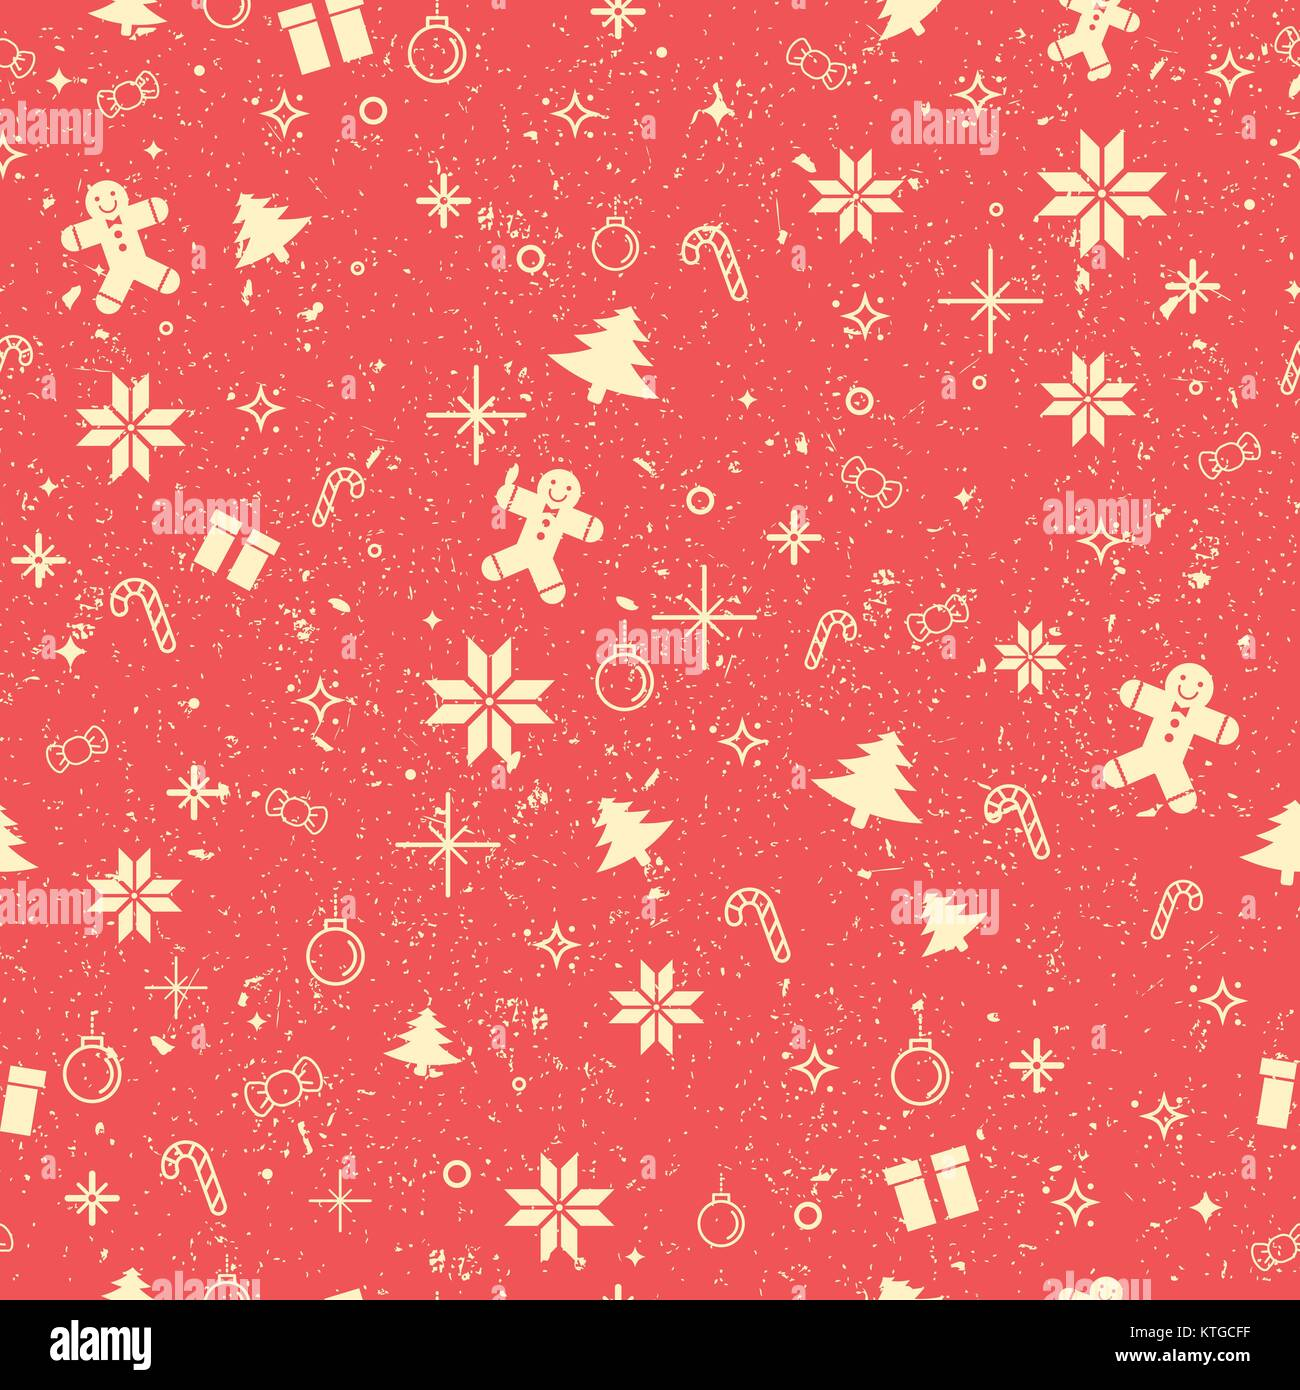 Seamless worn out Christmas decorating items background - Stock Vector